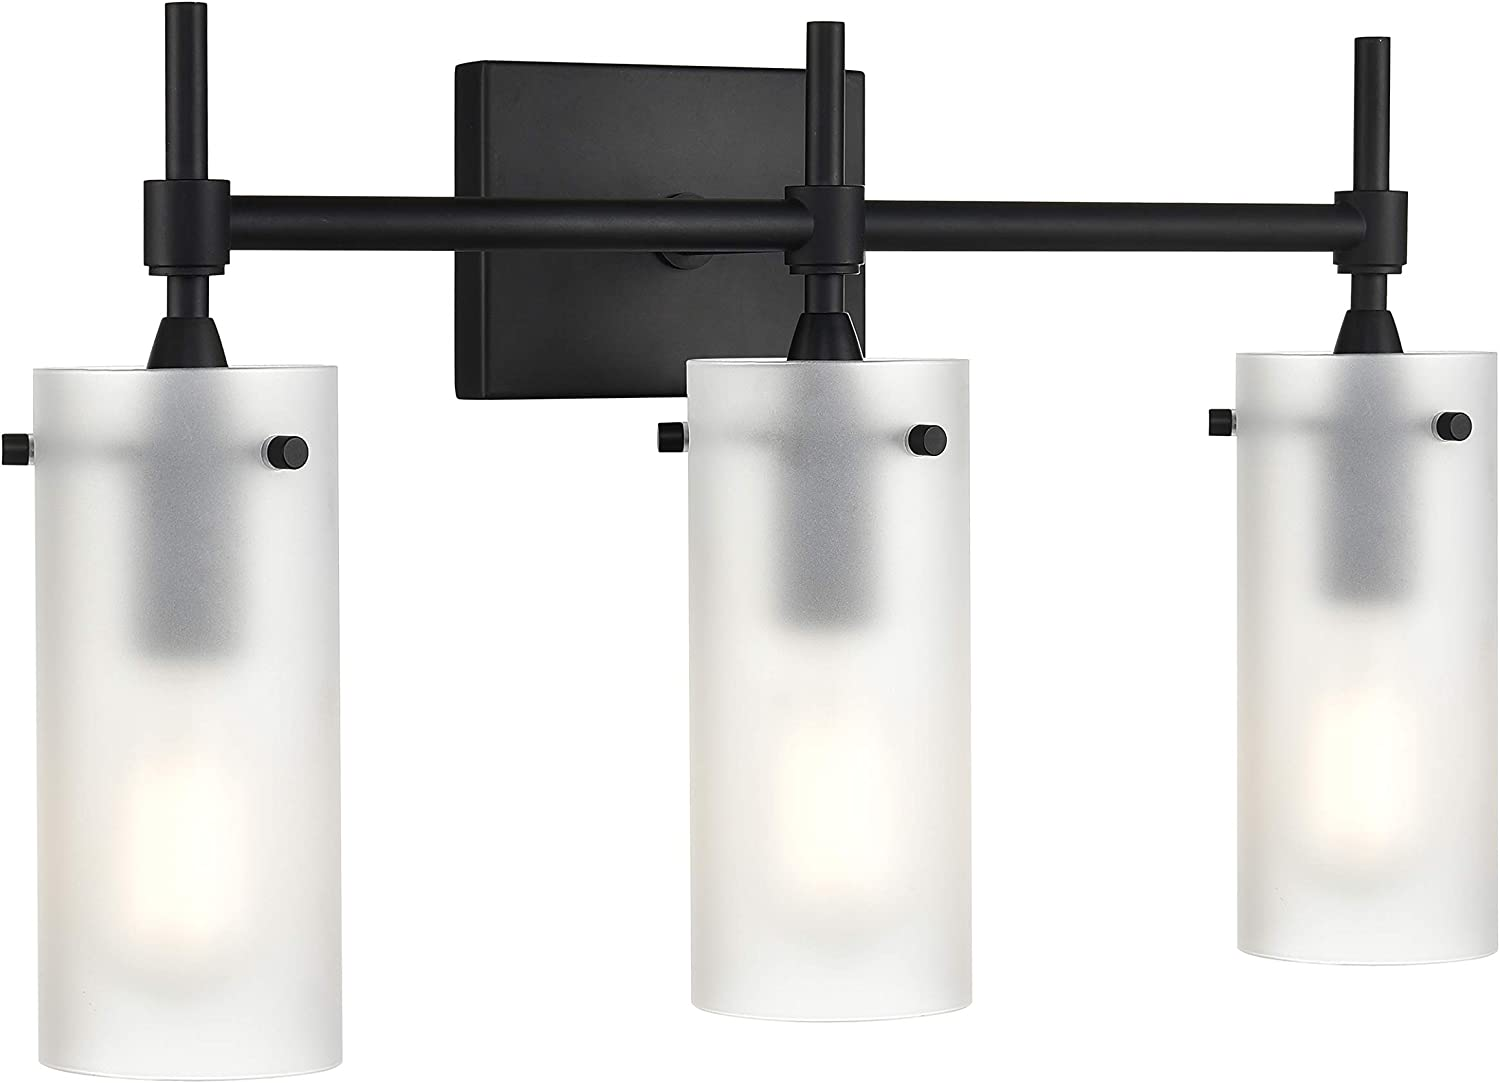 Effimero 3 Light Bathroom Vanity Light Black Hallway Wall Sconce, Frosted Glass Shades LL-WL33-FRST-5BLK